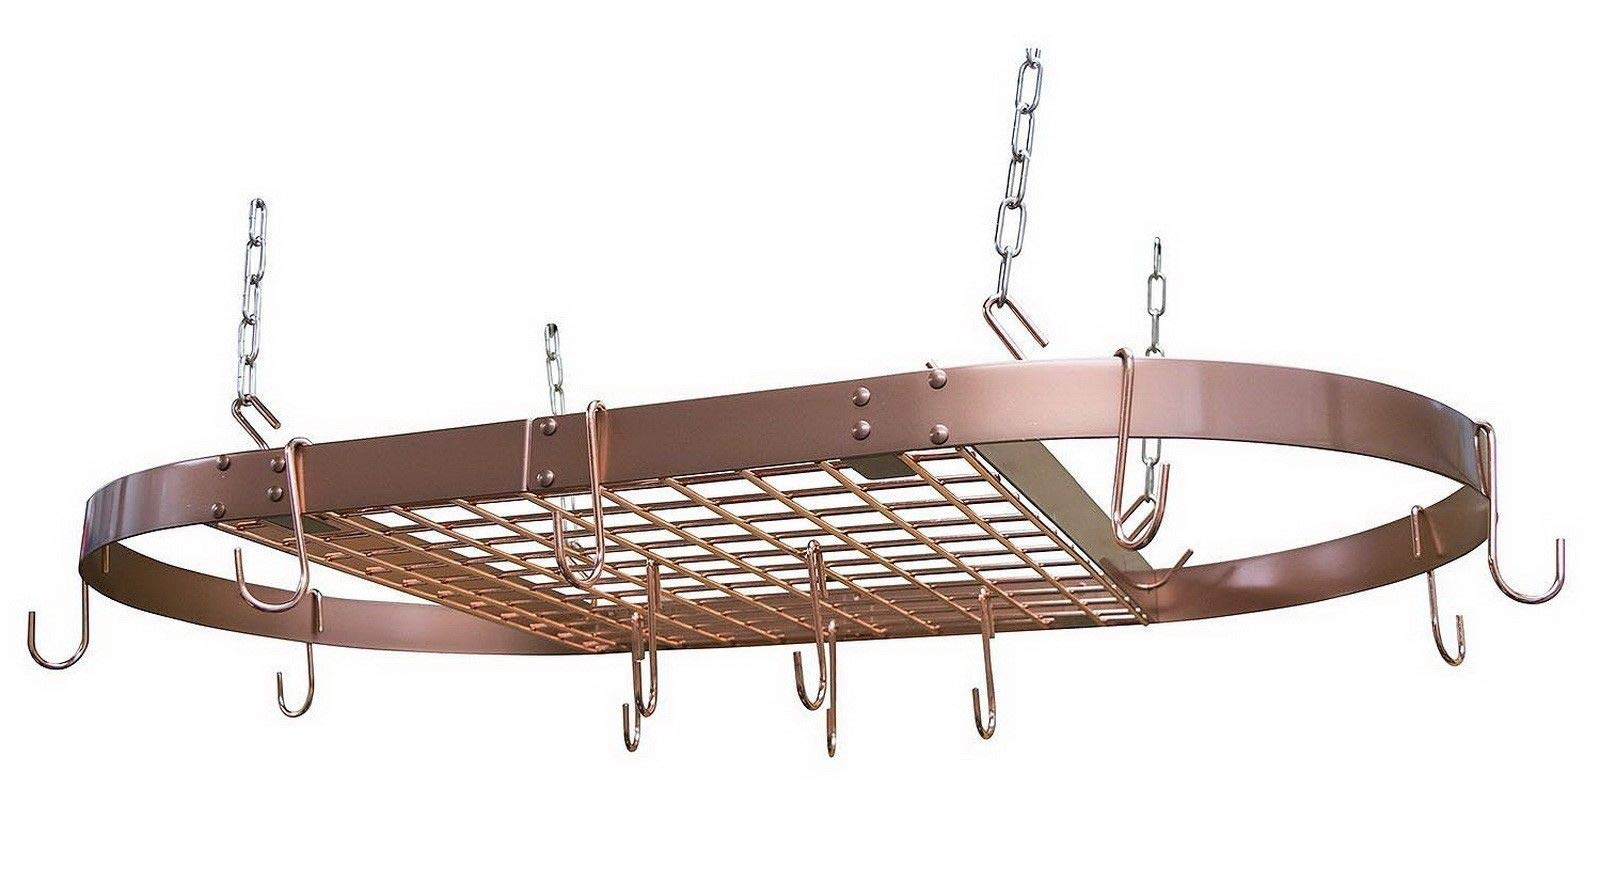 lunanice Large Copper Hanging Pot Rack size 1.5 H x 33 W x 17 D Inches Ceiling Hung Cookware Storage Grid Shelf Kitchen Storage & Organization